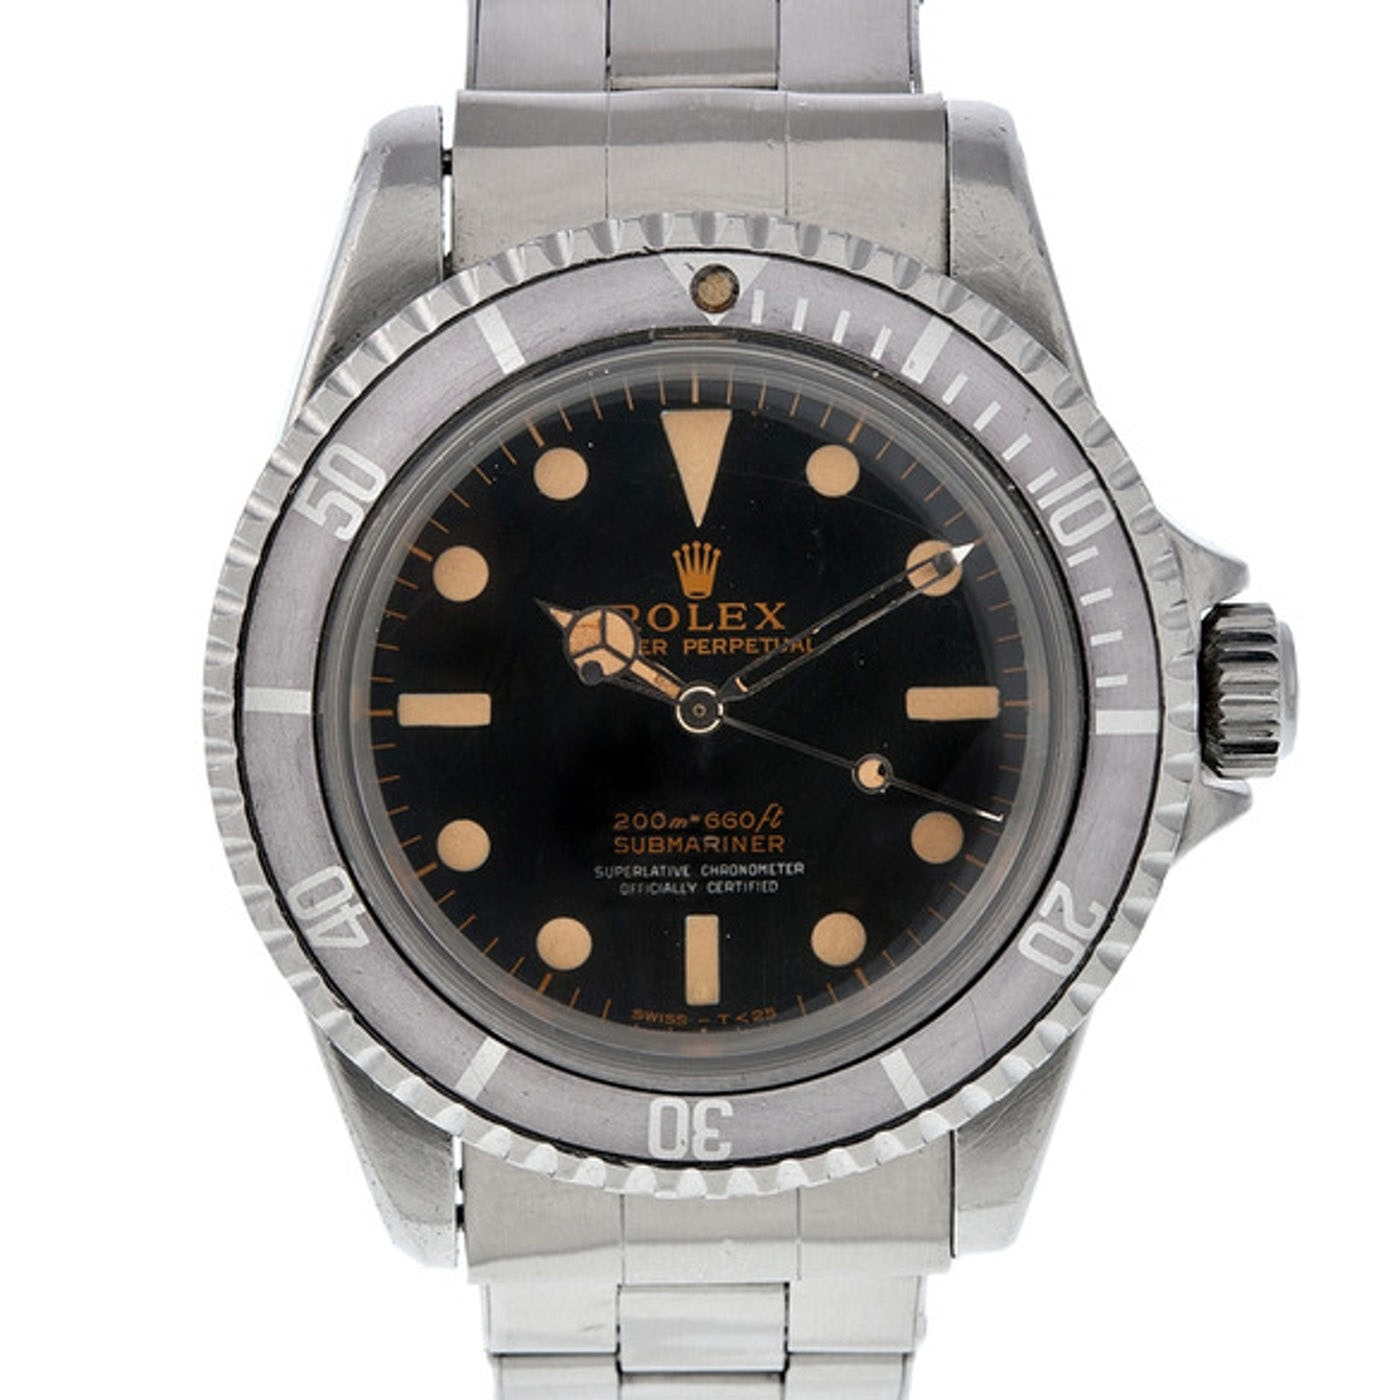 Captain Bob Barth's Rolex Submariner 5512 A Week On The Wrist: The Rolex Sea-Dweller Reference 126600 A Week On The Wrist: The Rolex Sea-Dweller Reference 126600  img